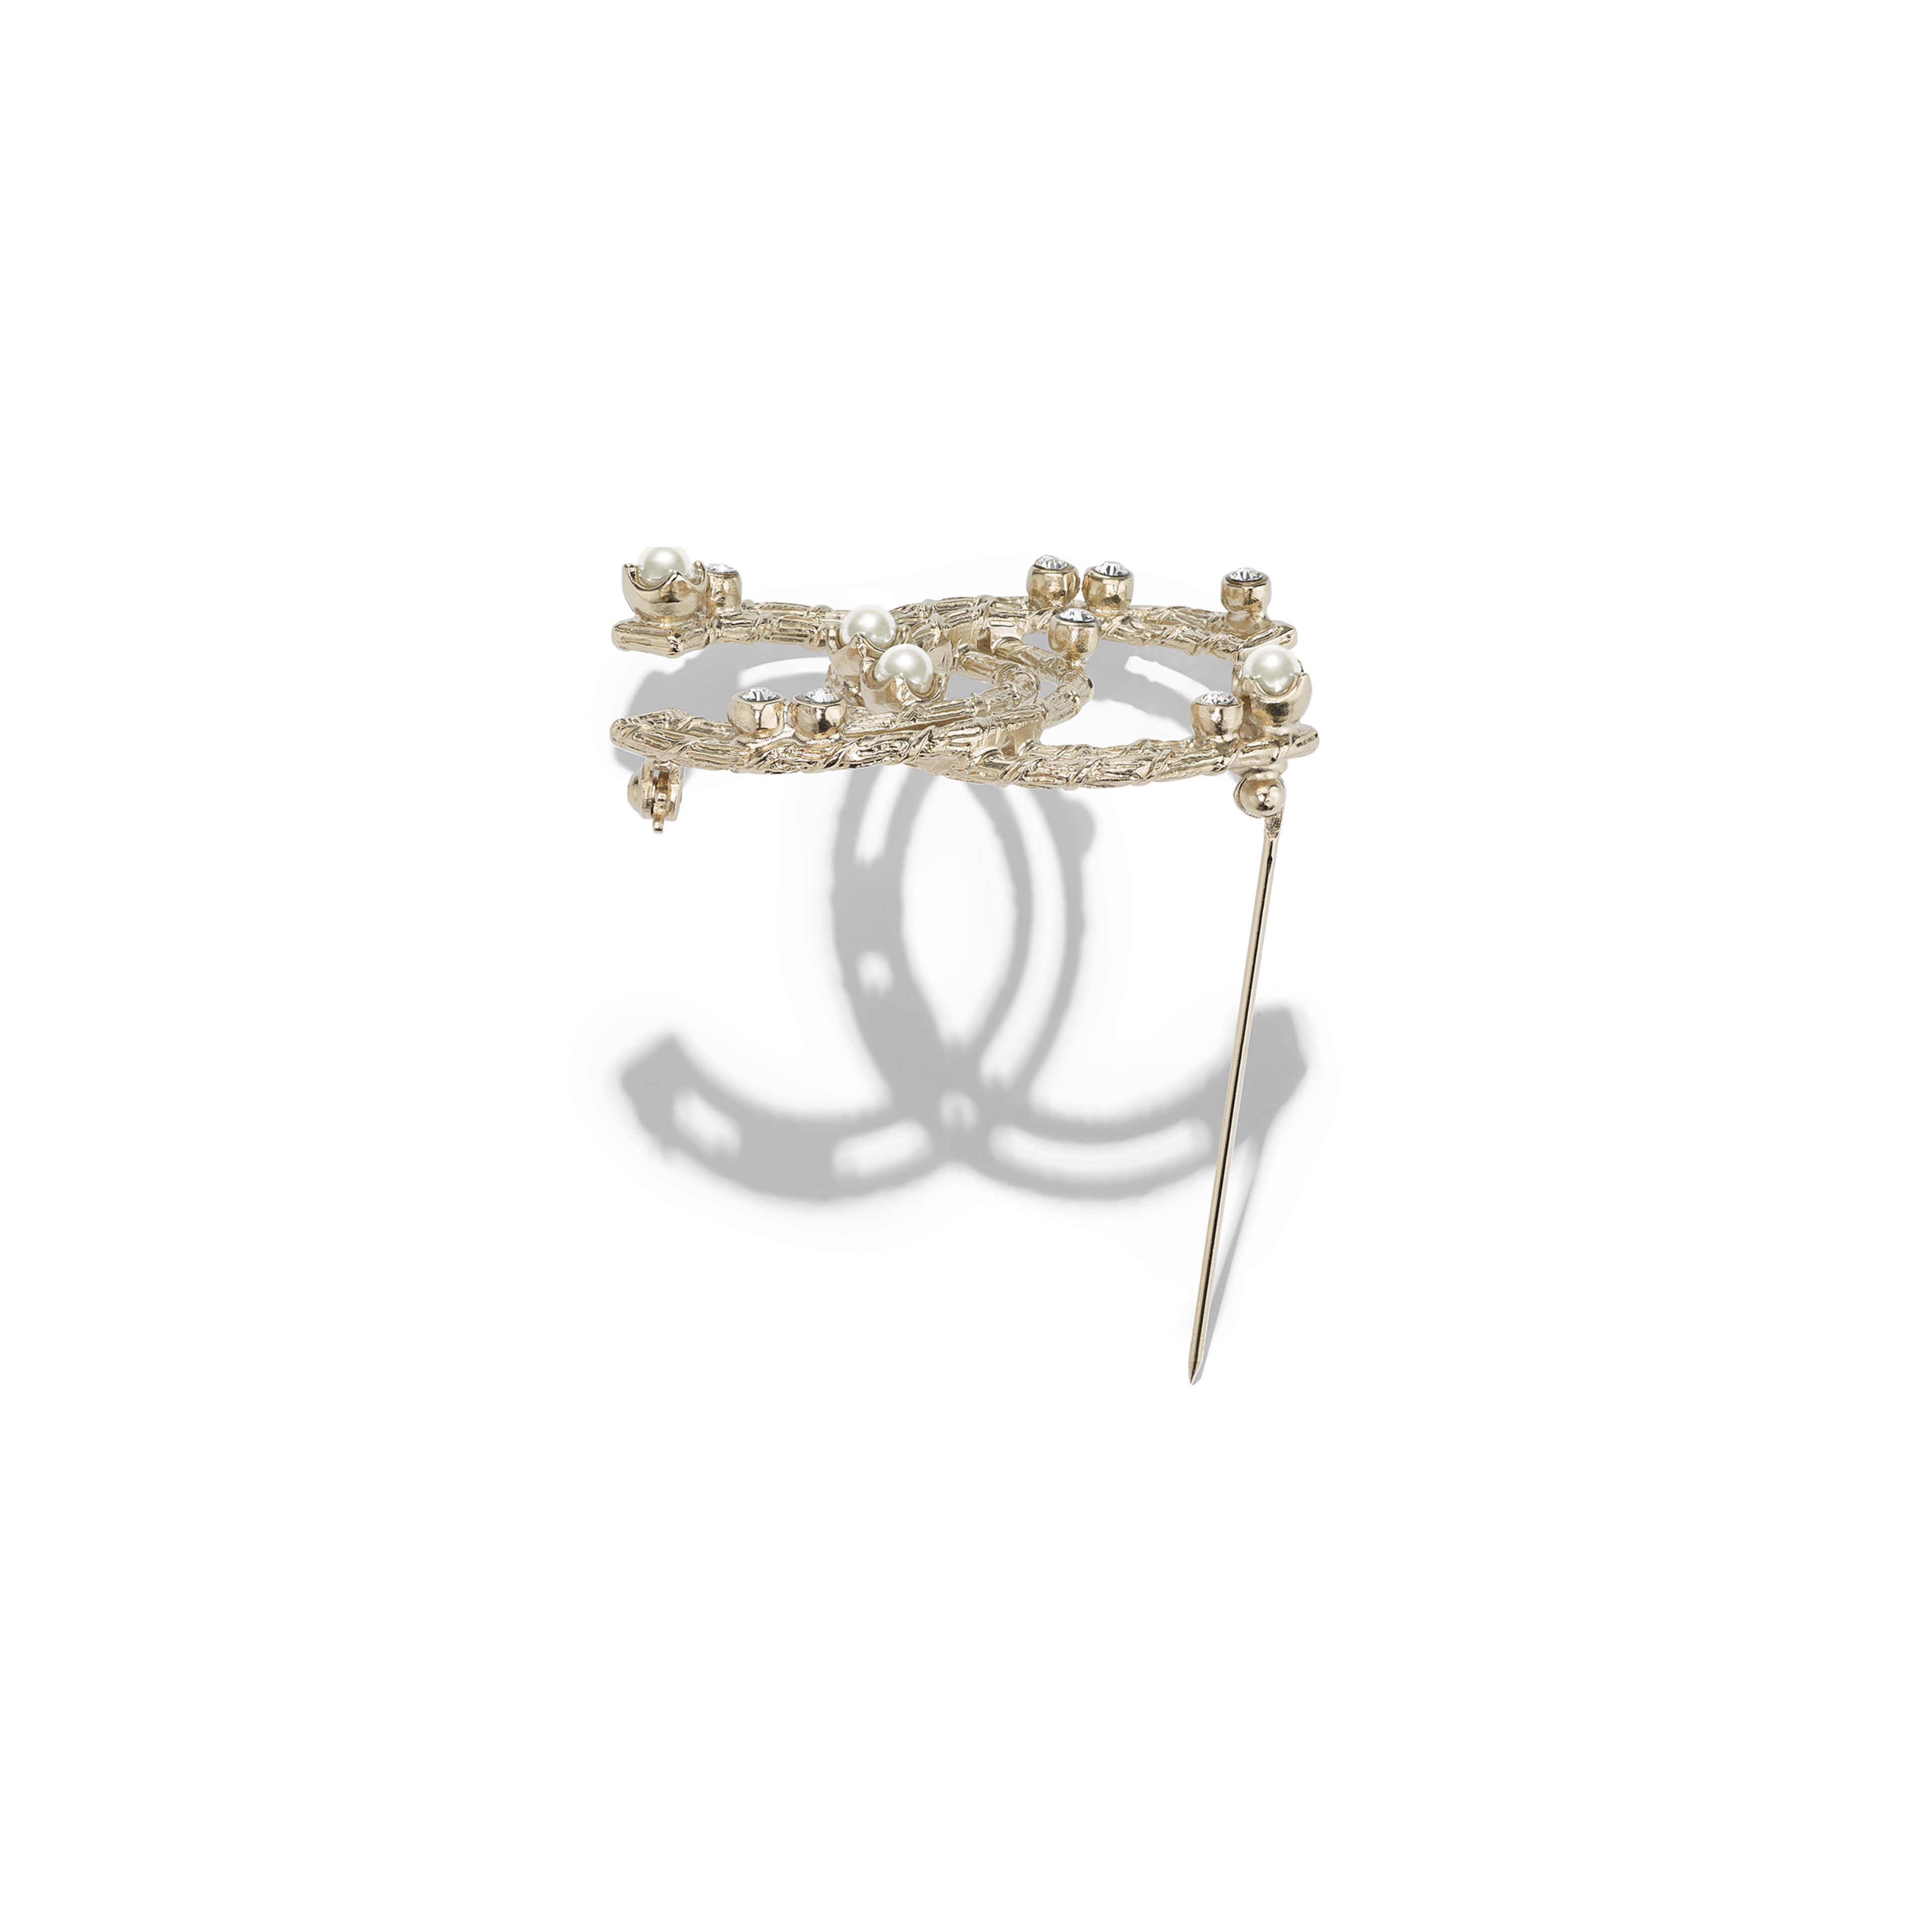 Brooch - Gold, Pearly White & Crystal - Metal, Glass Pearls & Strass - Alternative view - see full sized version